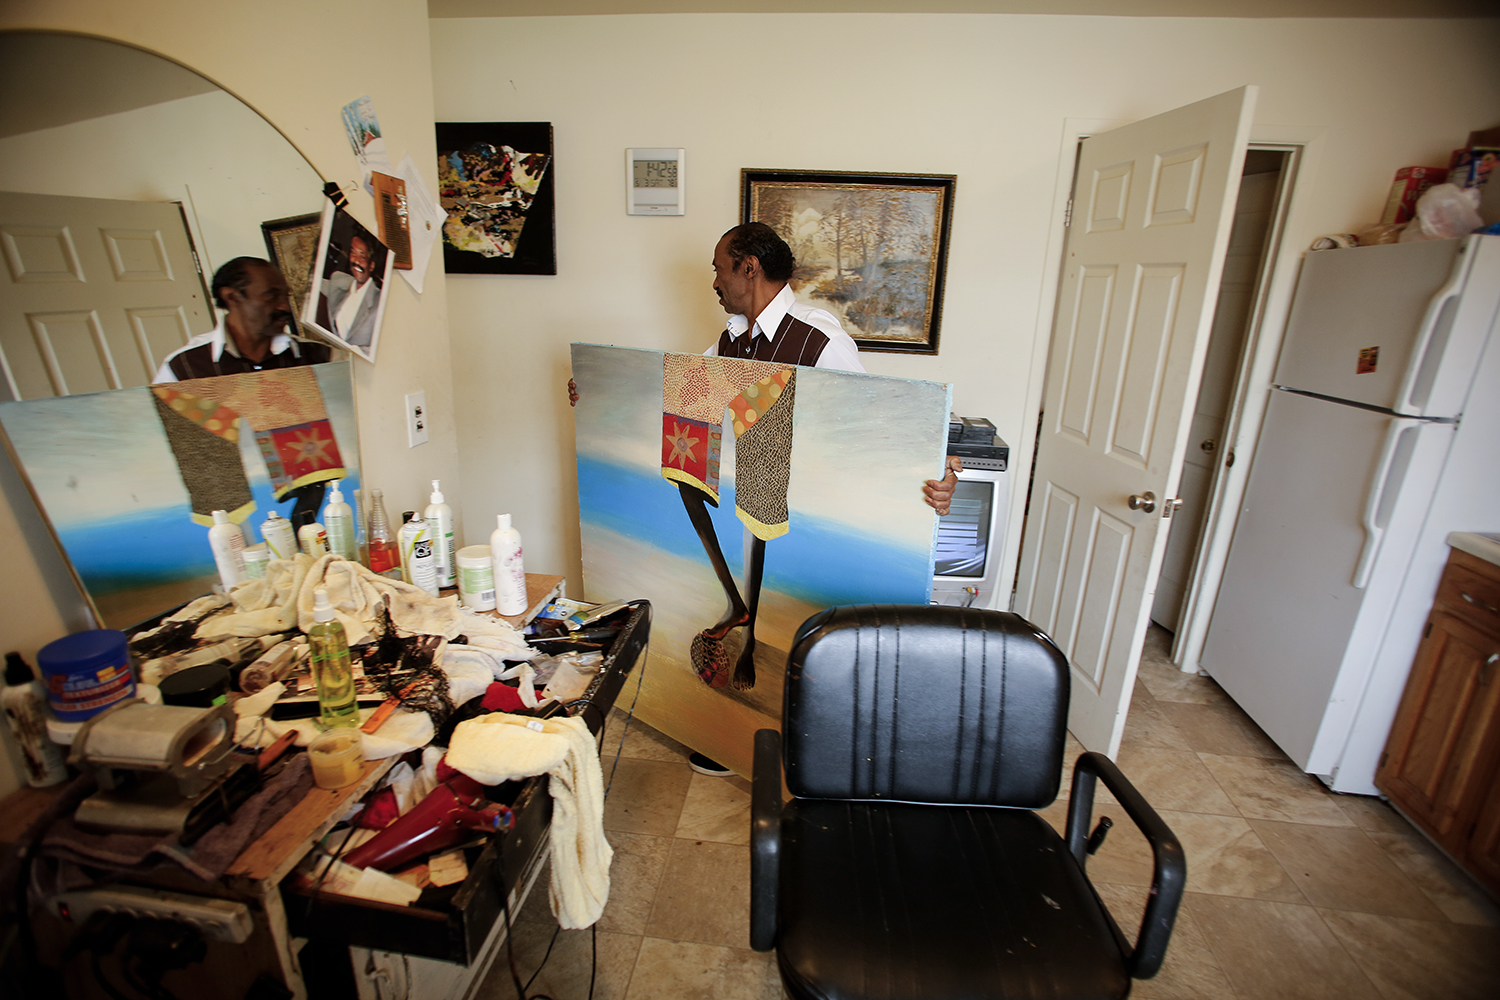 Michael Horner, 66, carries a piece of his art through his styling area on Saturday, May 3, 2014 in his home in Detroit. Tim Galloway for Al Jazeera America